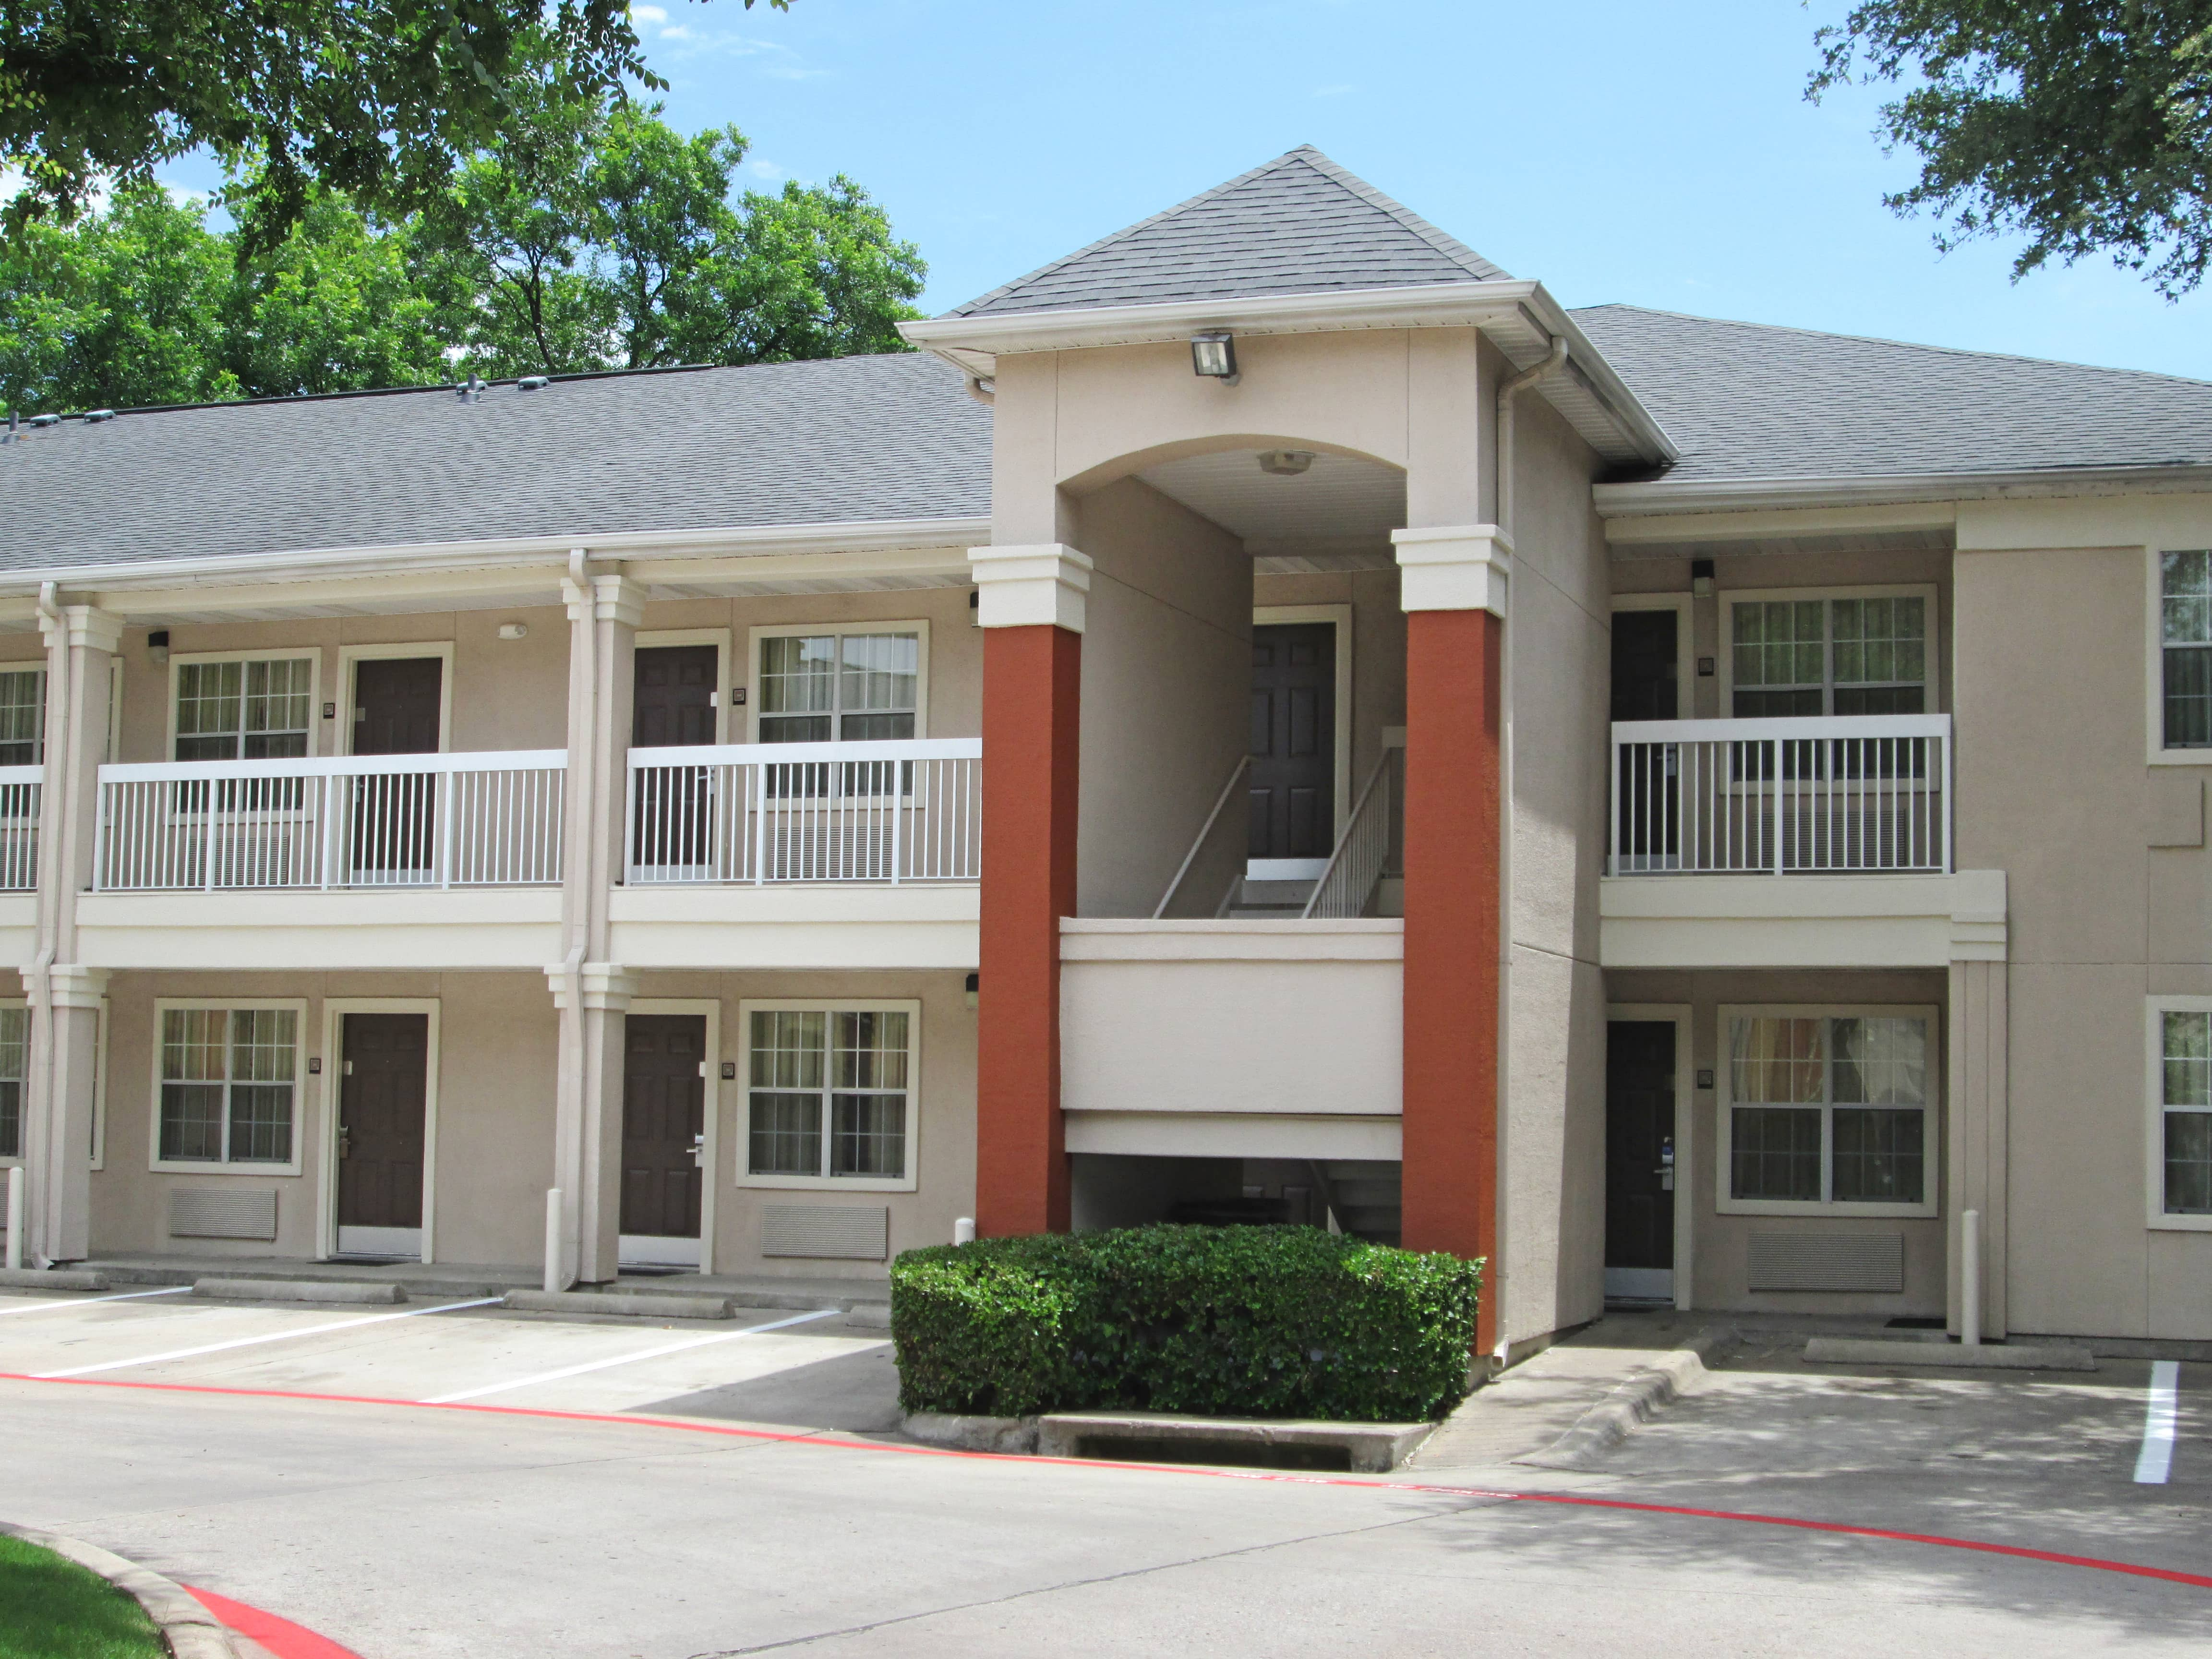 Garage Apartment For Rent In Dallas Corporate Housing Options In Dallas Tx Corporate Housing